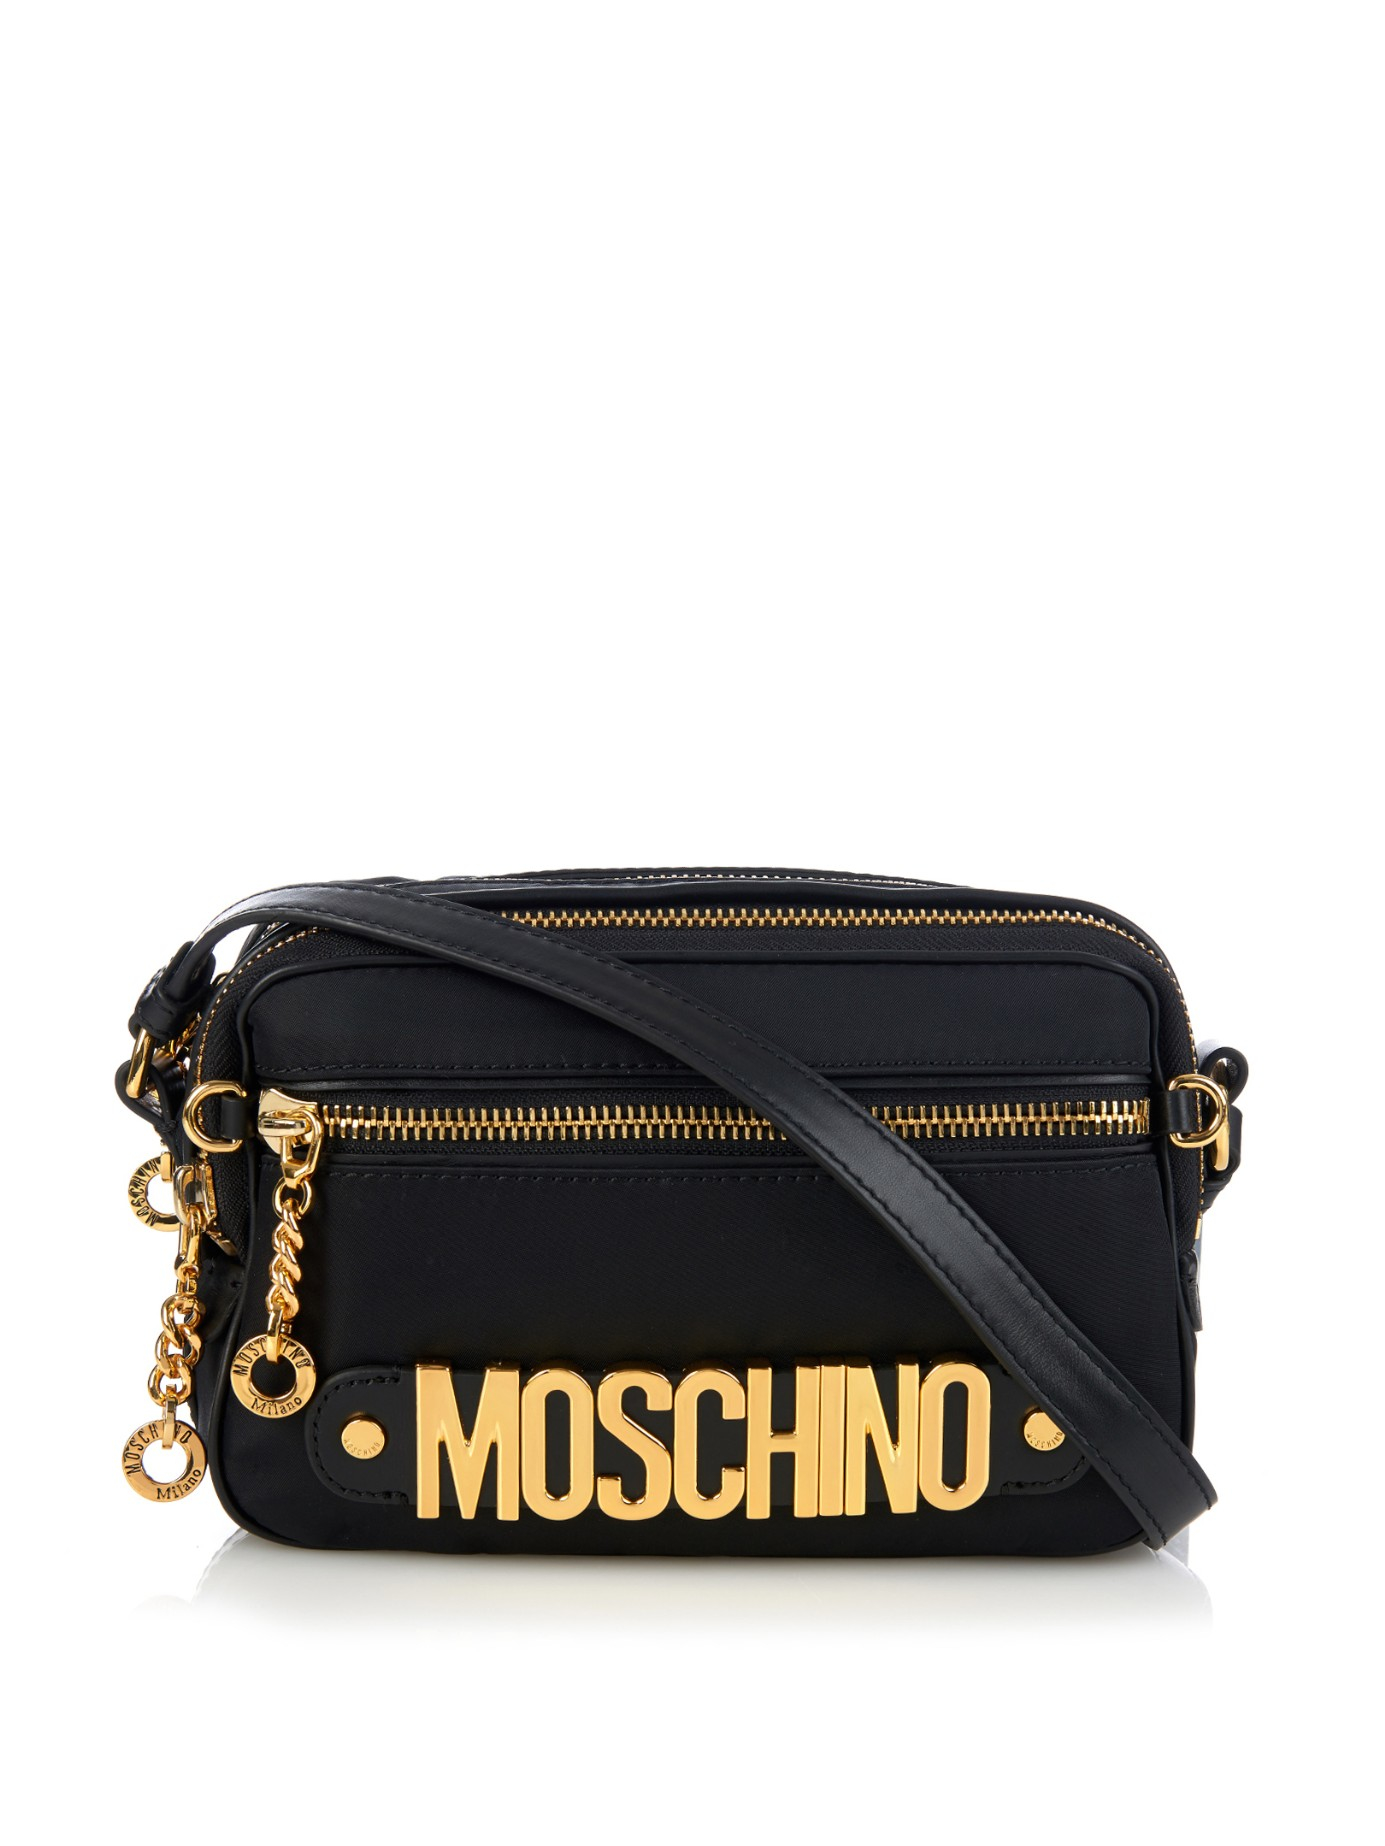 244e0d55366 Moschino Lettering Cross-Body Bag in Black - Lyst